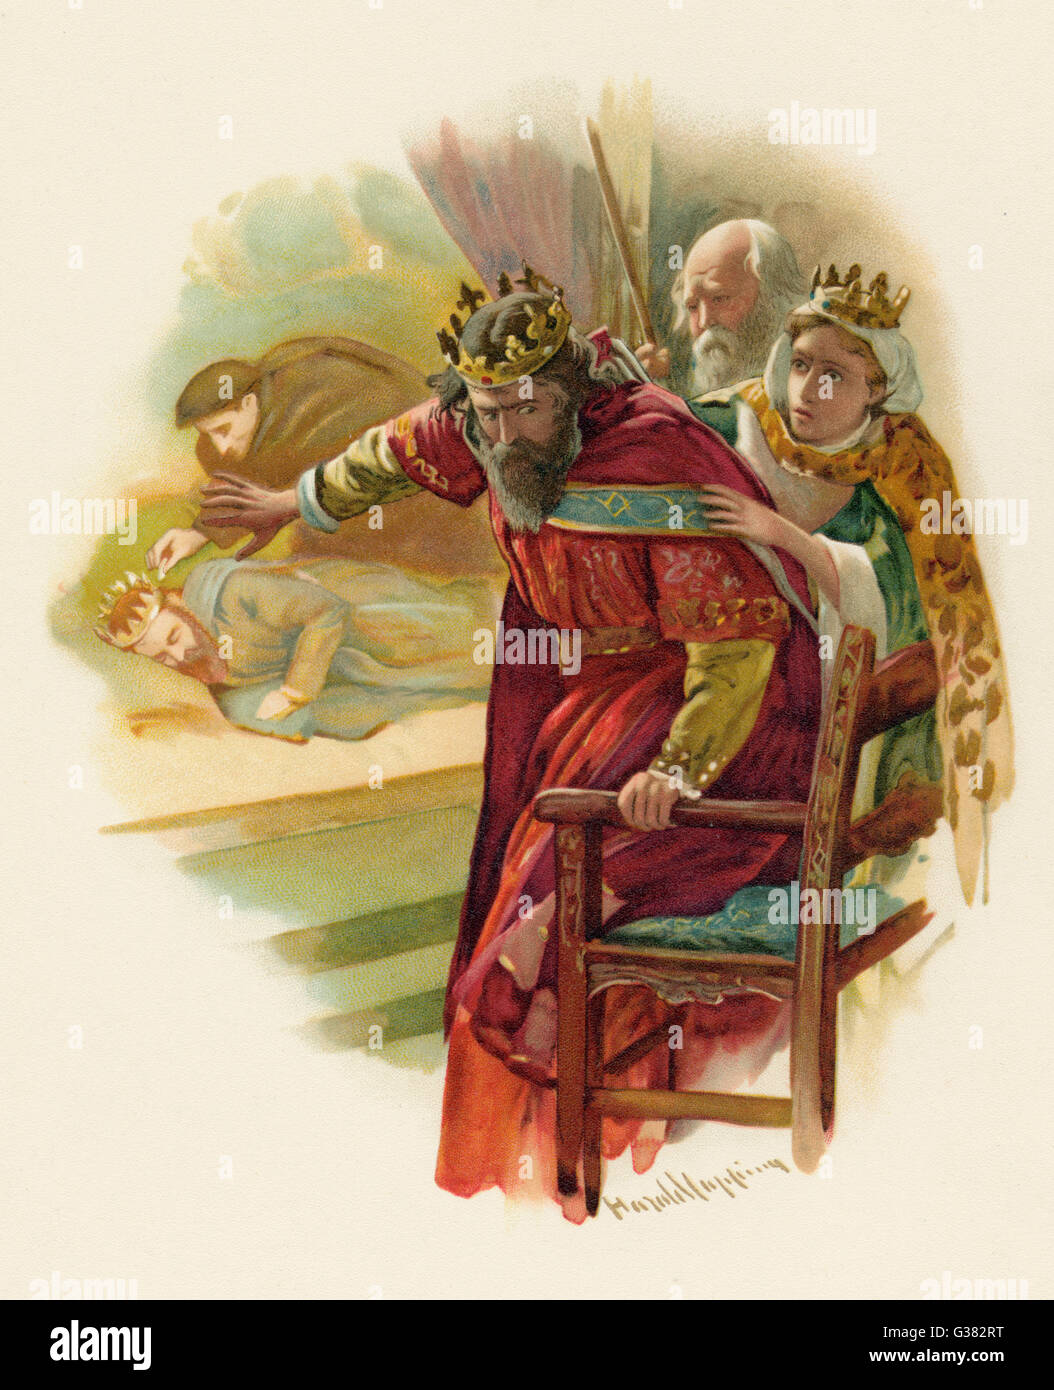 Claudius disturbed by  the play scene - Stock Image